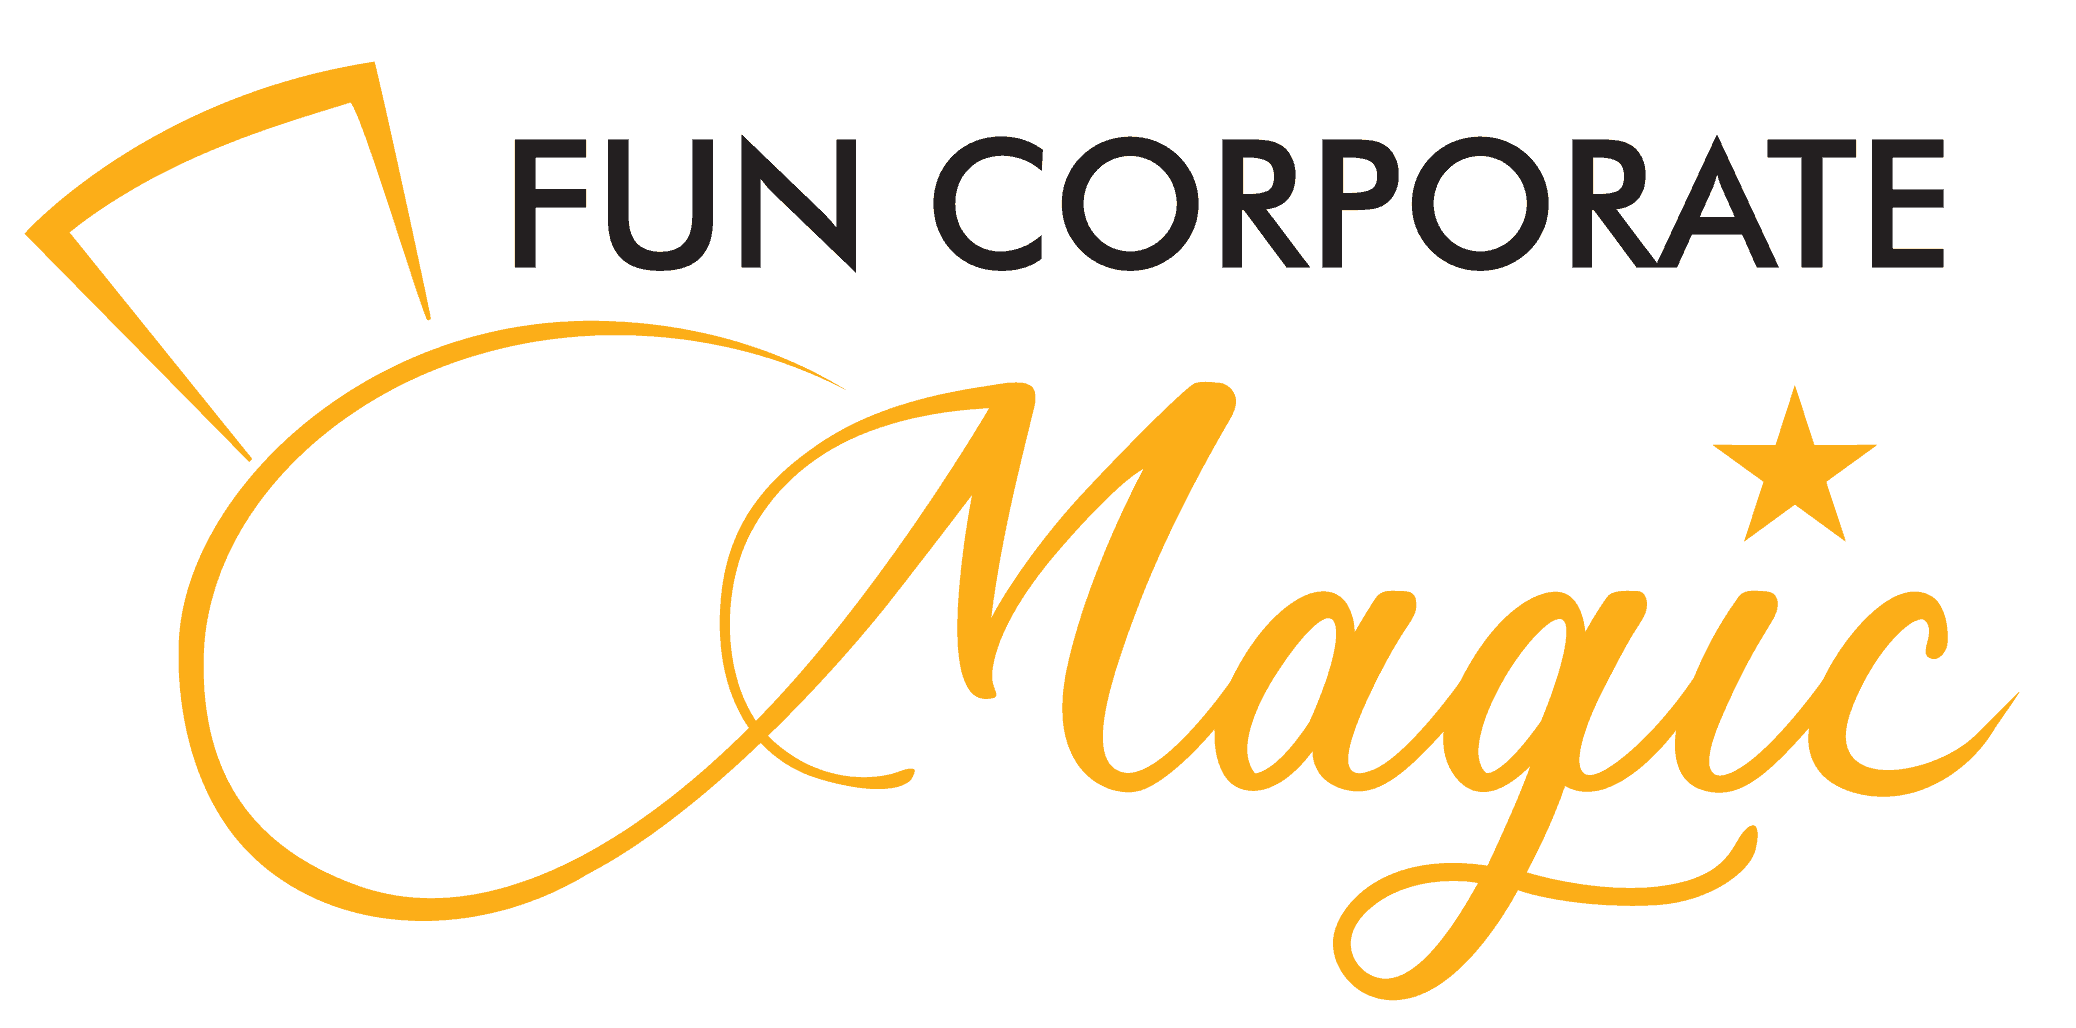 Fun Corporate Magic